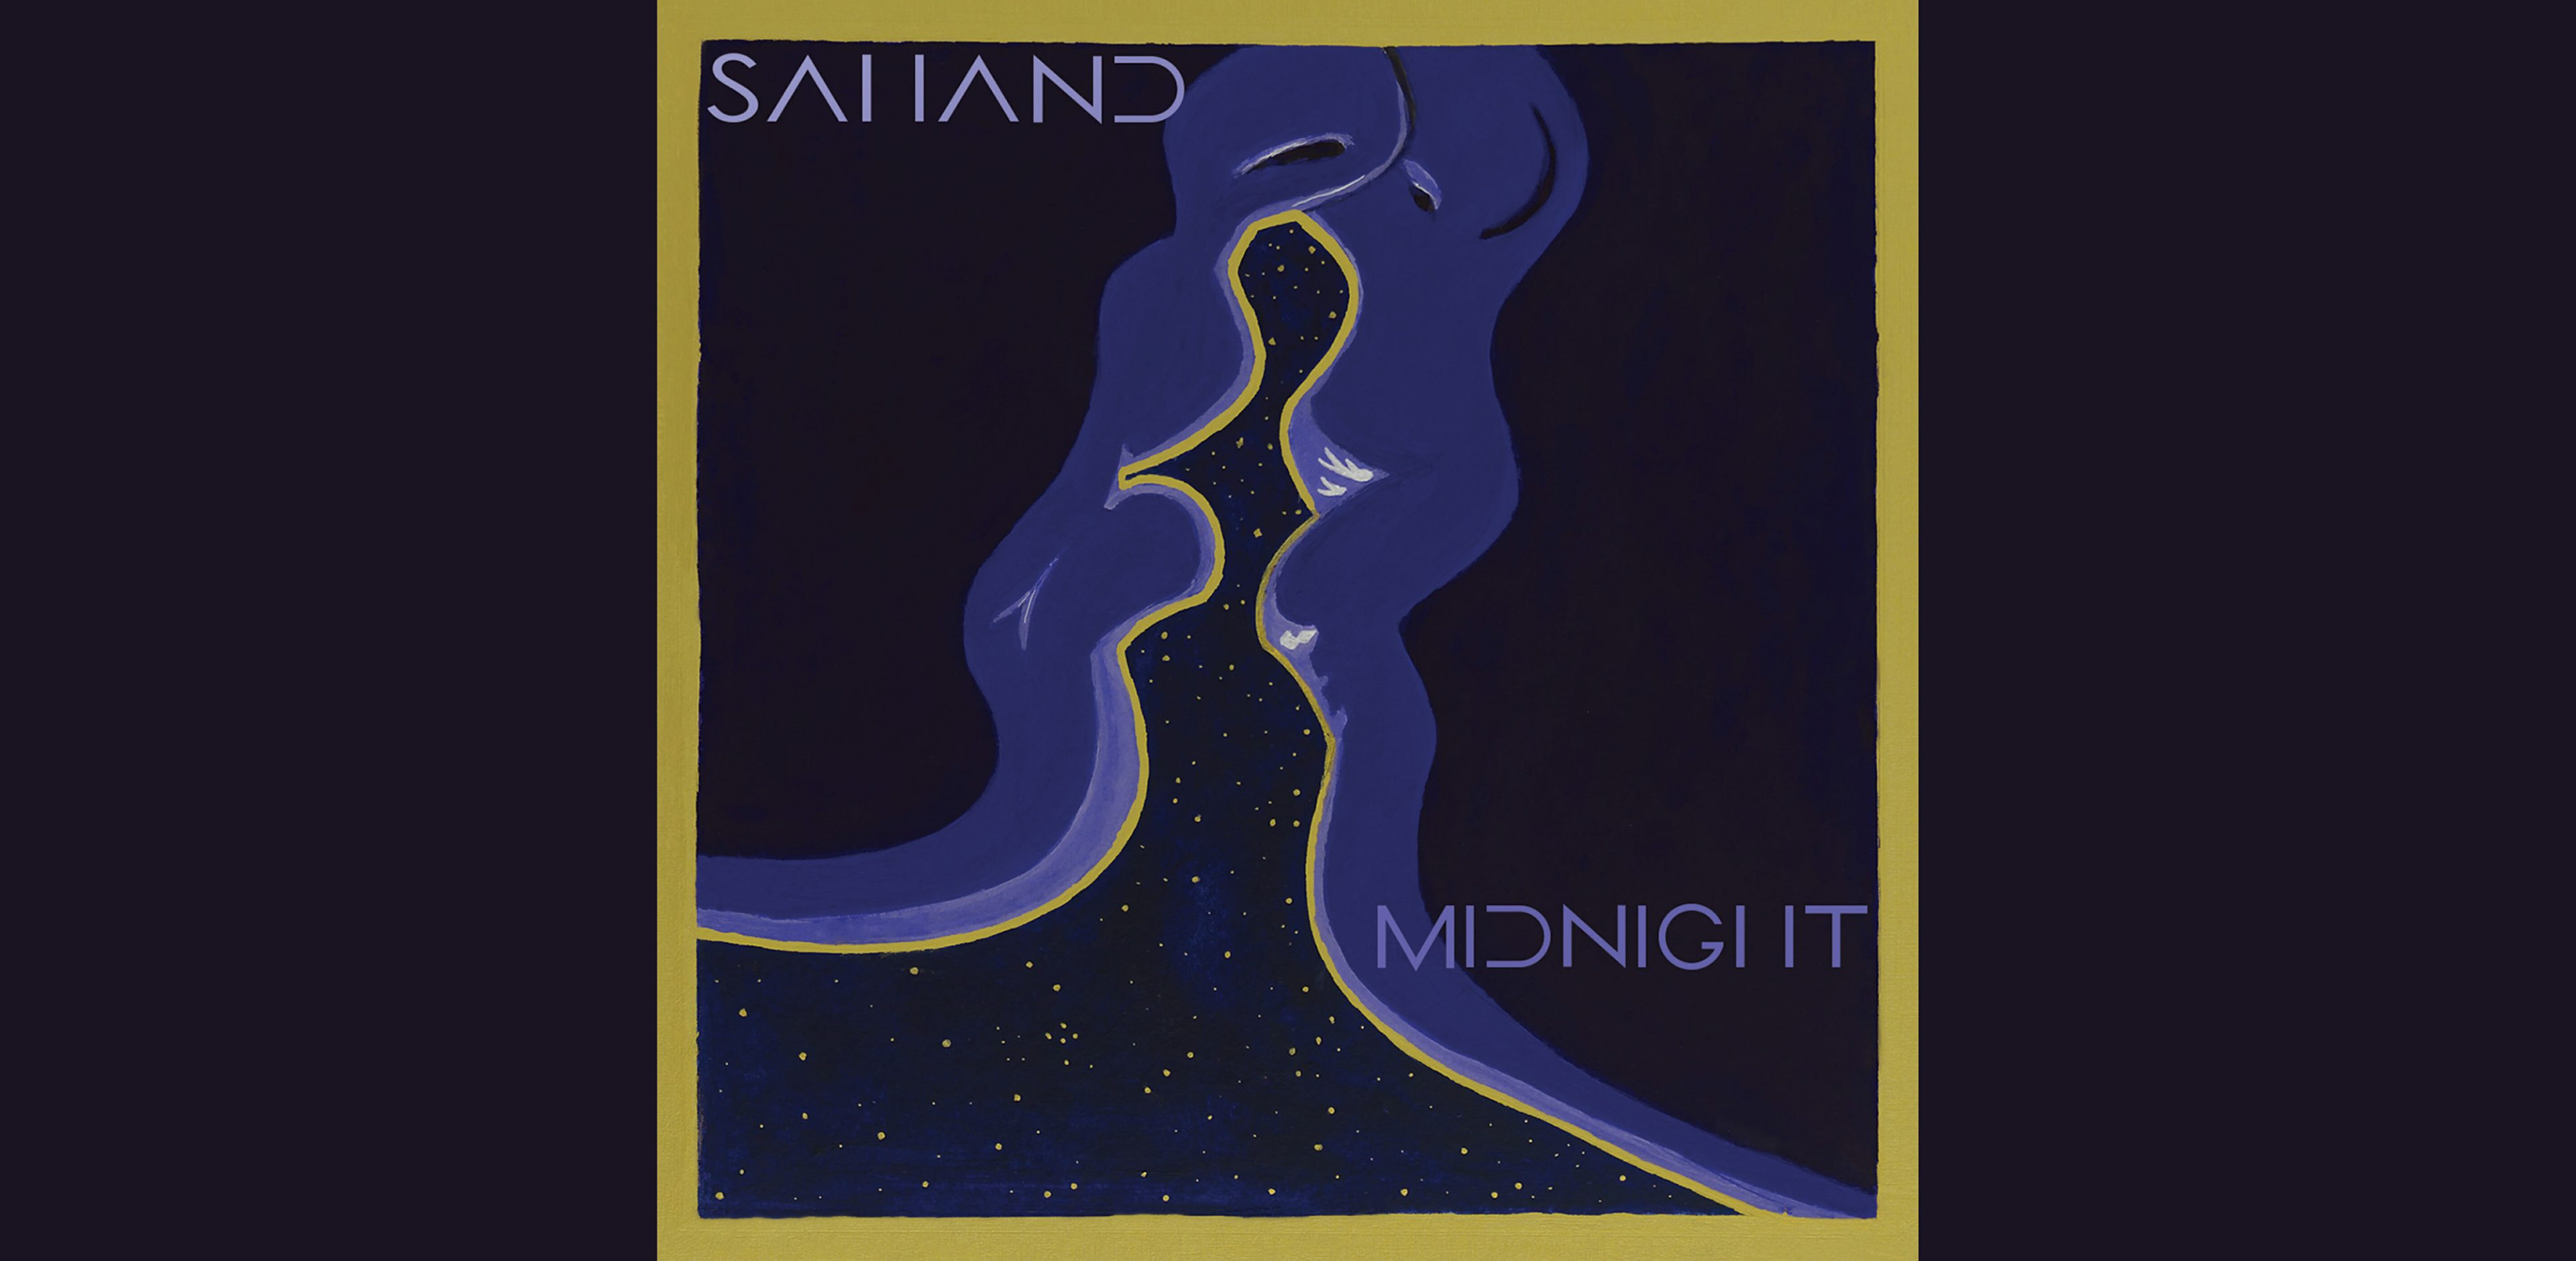 Midnight is Out Now!